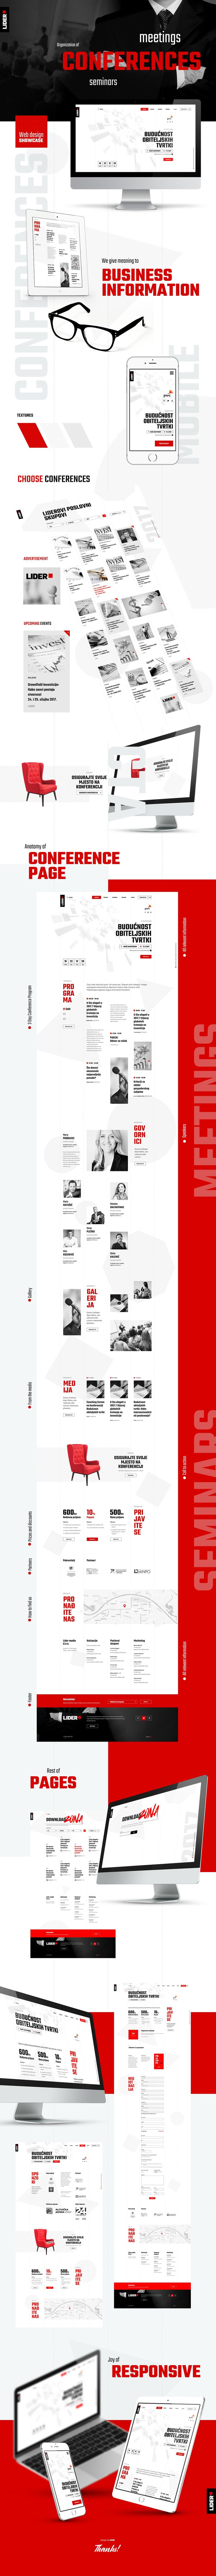 Web design project for Lider business conference organizer firm. Crafted by Euroart93